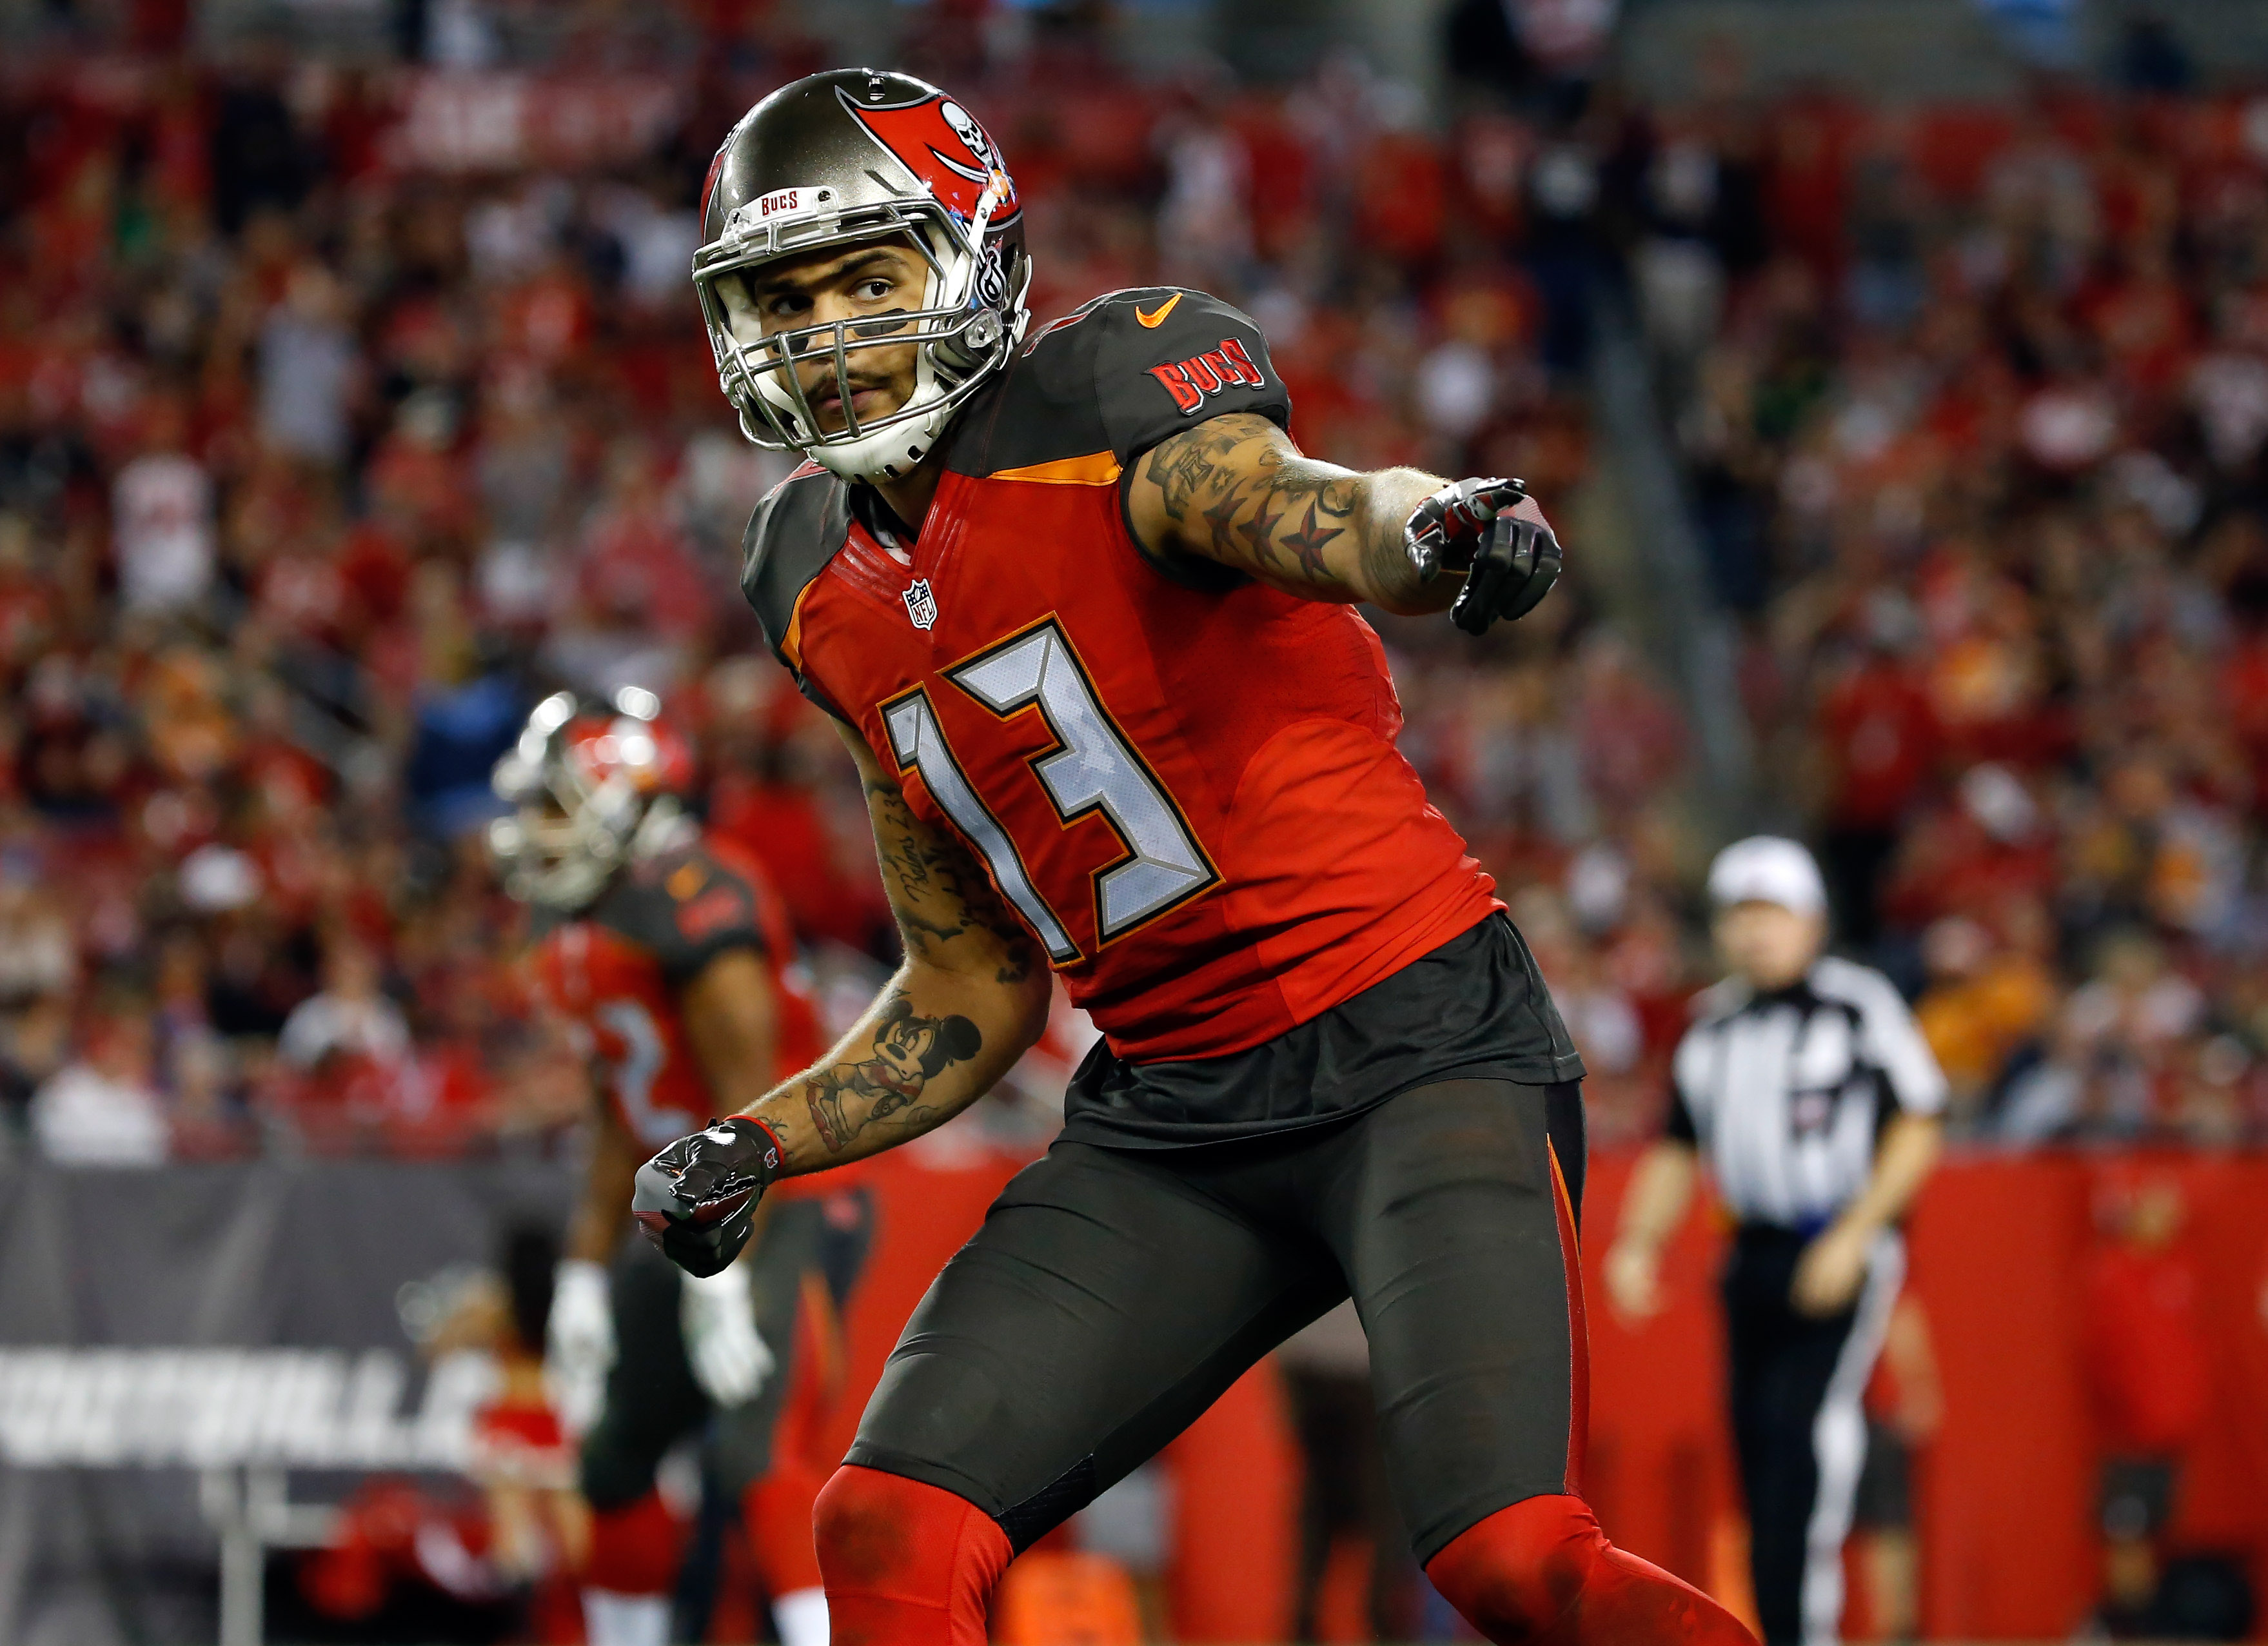 Tampa Bay opens at New Orleans, the reigning NFC South champion and heavy favorite to repeat. Then the Bucs host the Super Bowl-champion Eagles and AFC .